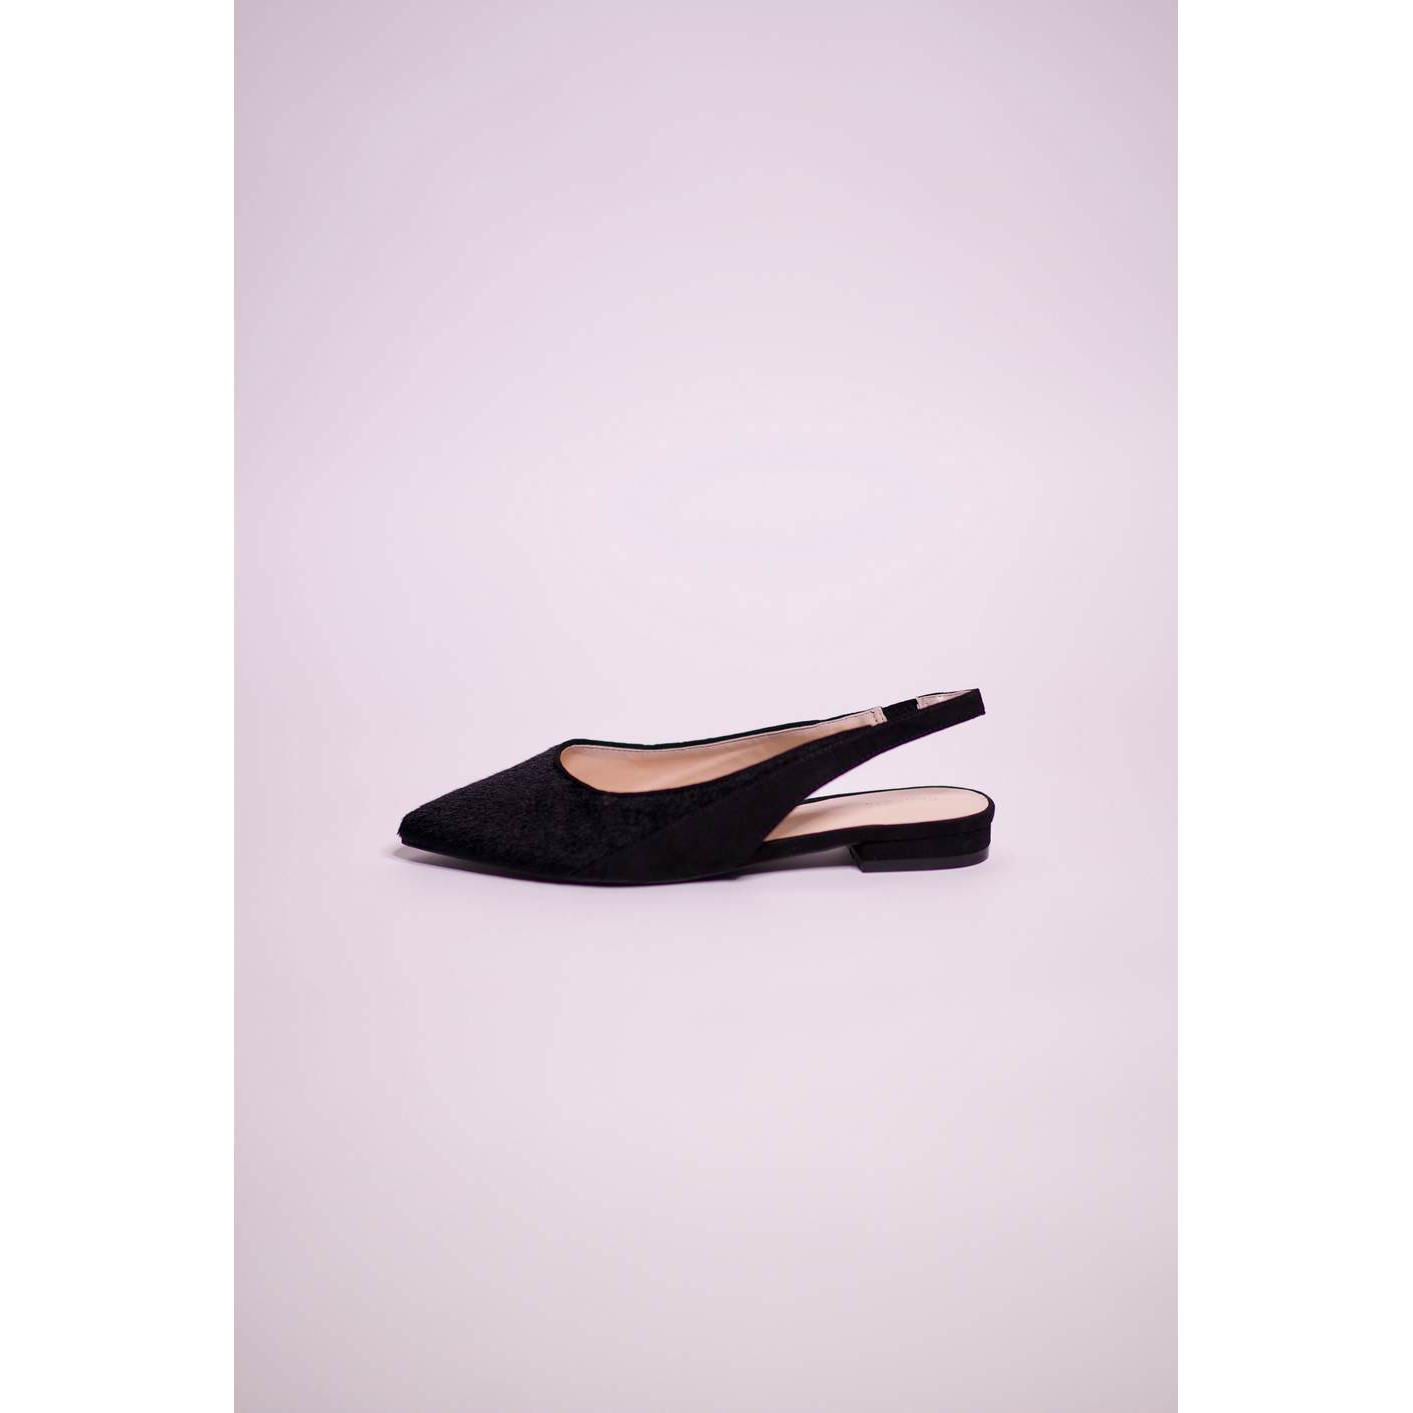 Parfois Black Sling Back Flats - The HiO Life